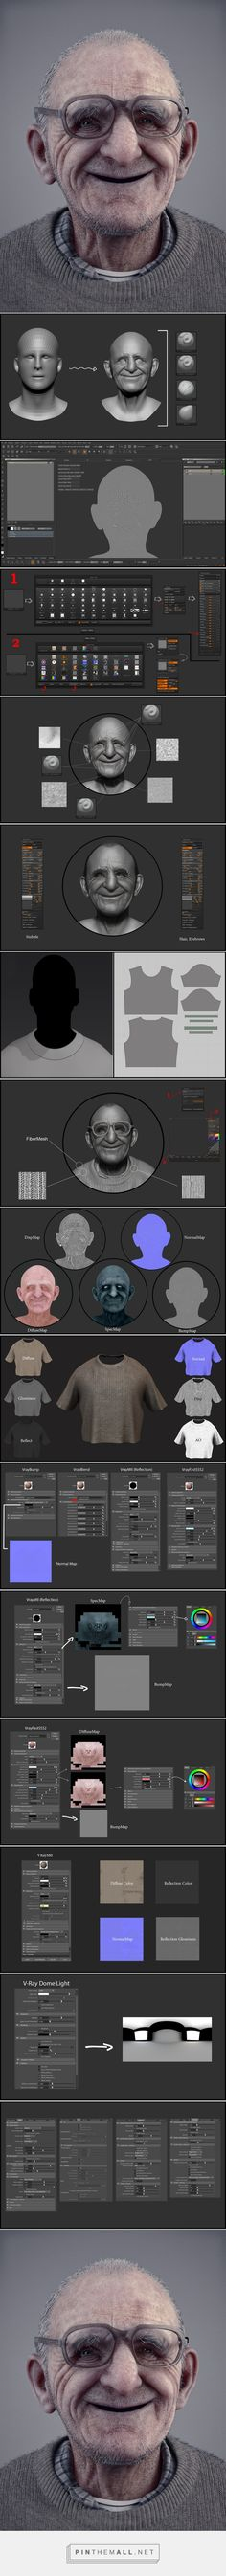 // Making of 'Smile at all ages' by Reza Abedi / Maya V-Ray ZBrush Misc tutorial from 3dtotal.com...